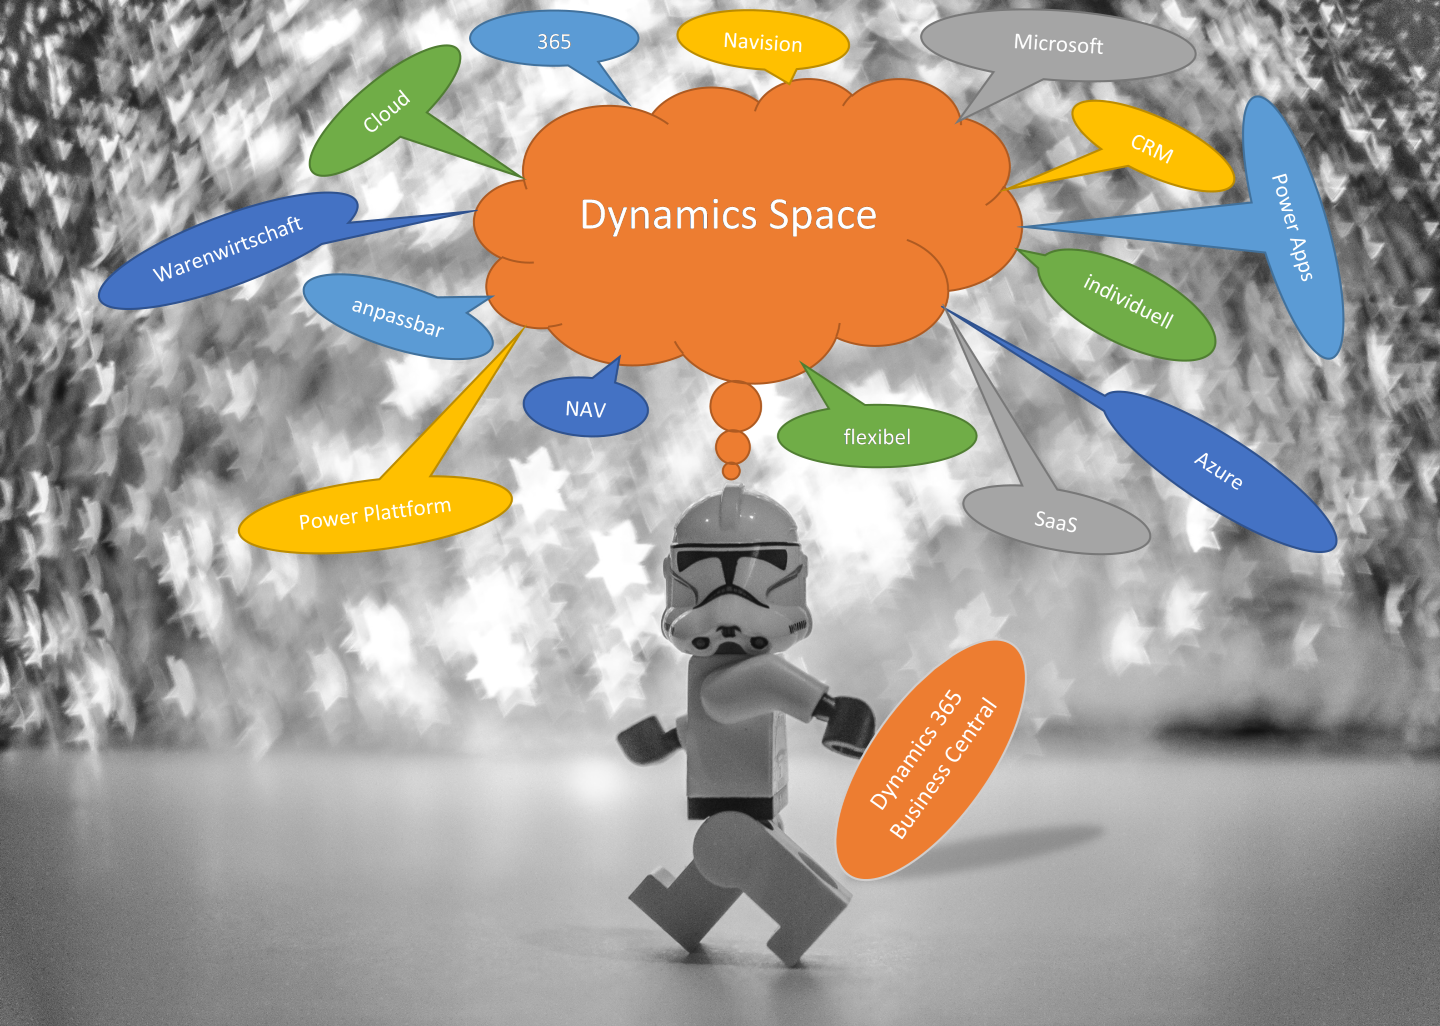 Dynamics_Space_small_2